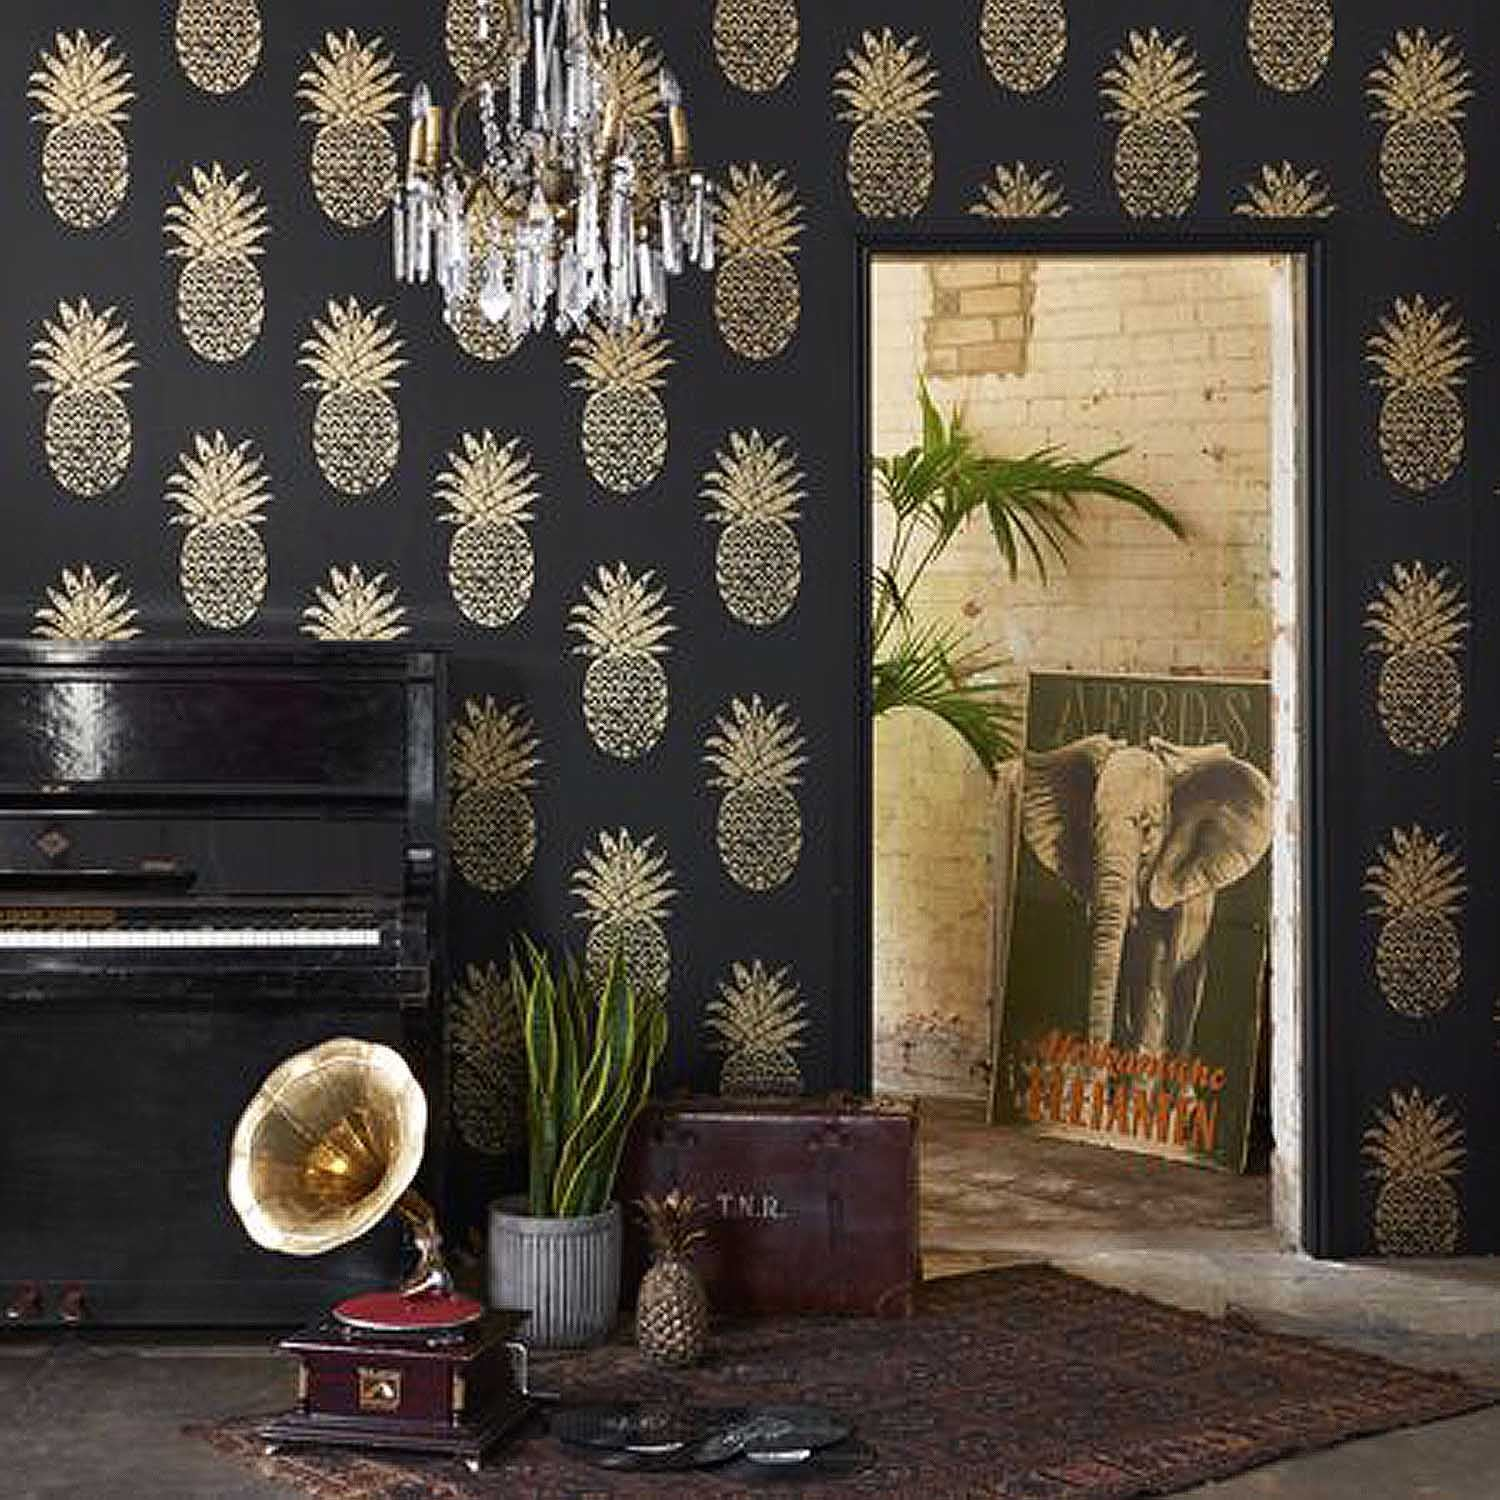 Tobago Pineapple Motif Designer Wallpaper Clarke and Clarke | Gold & Blue